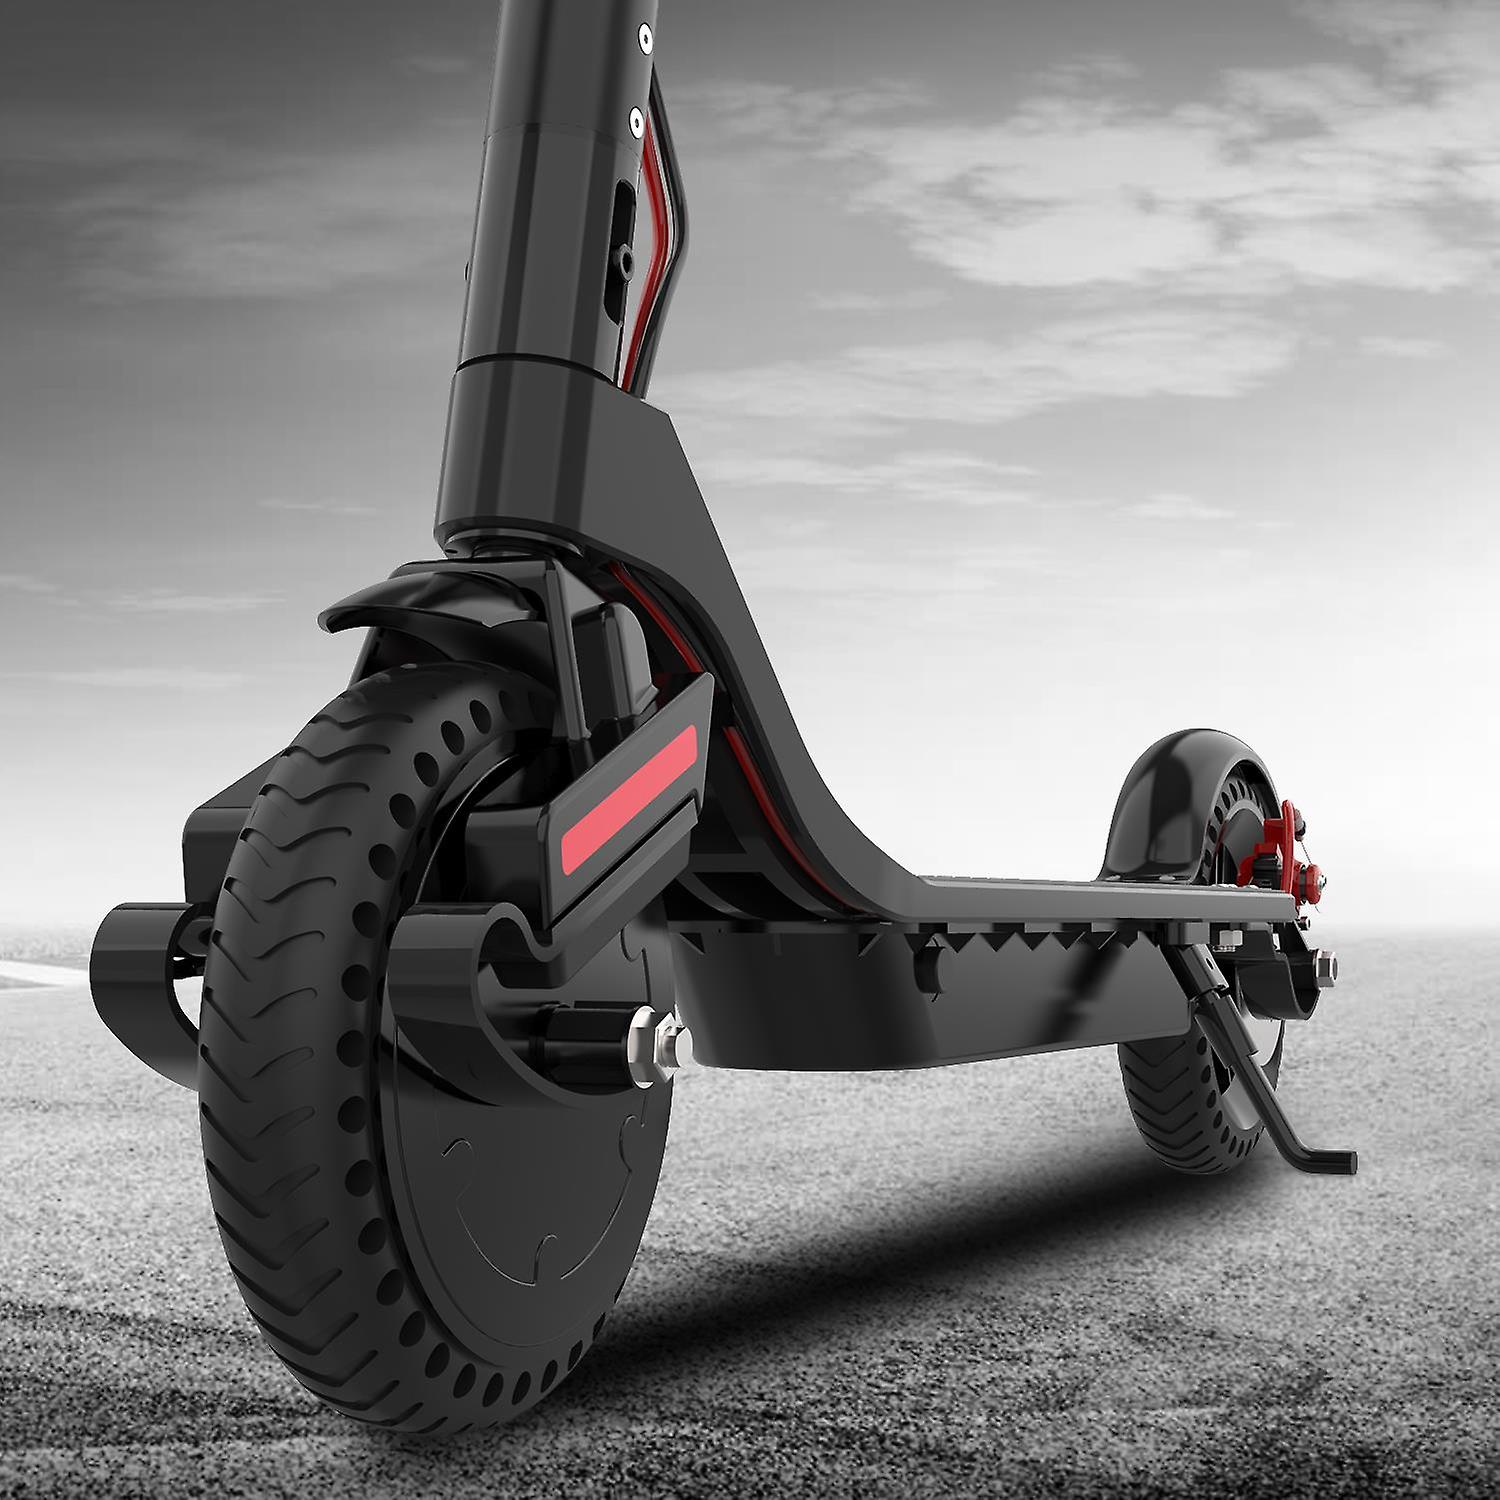 Colorway Electric Scooter, Lightweight, Foldable, 7.5Ah, 8.5 inch - Black